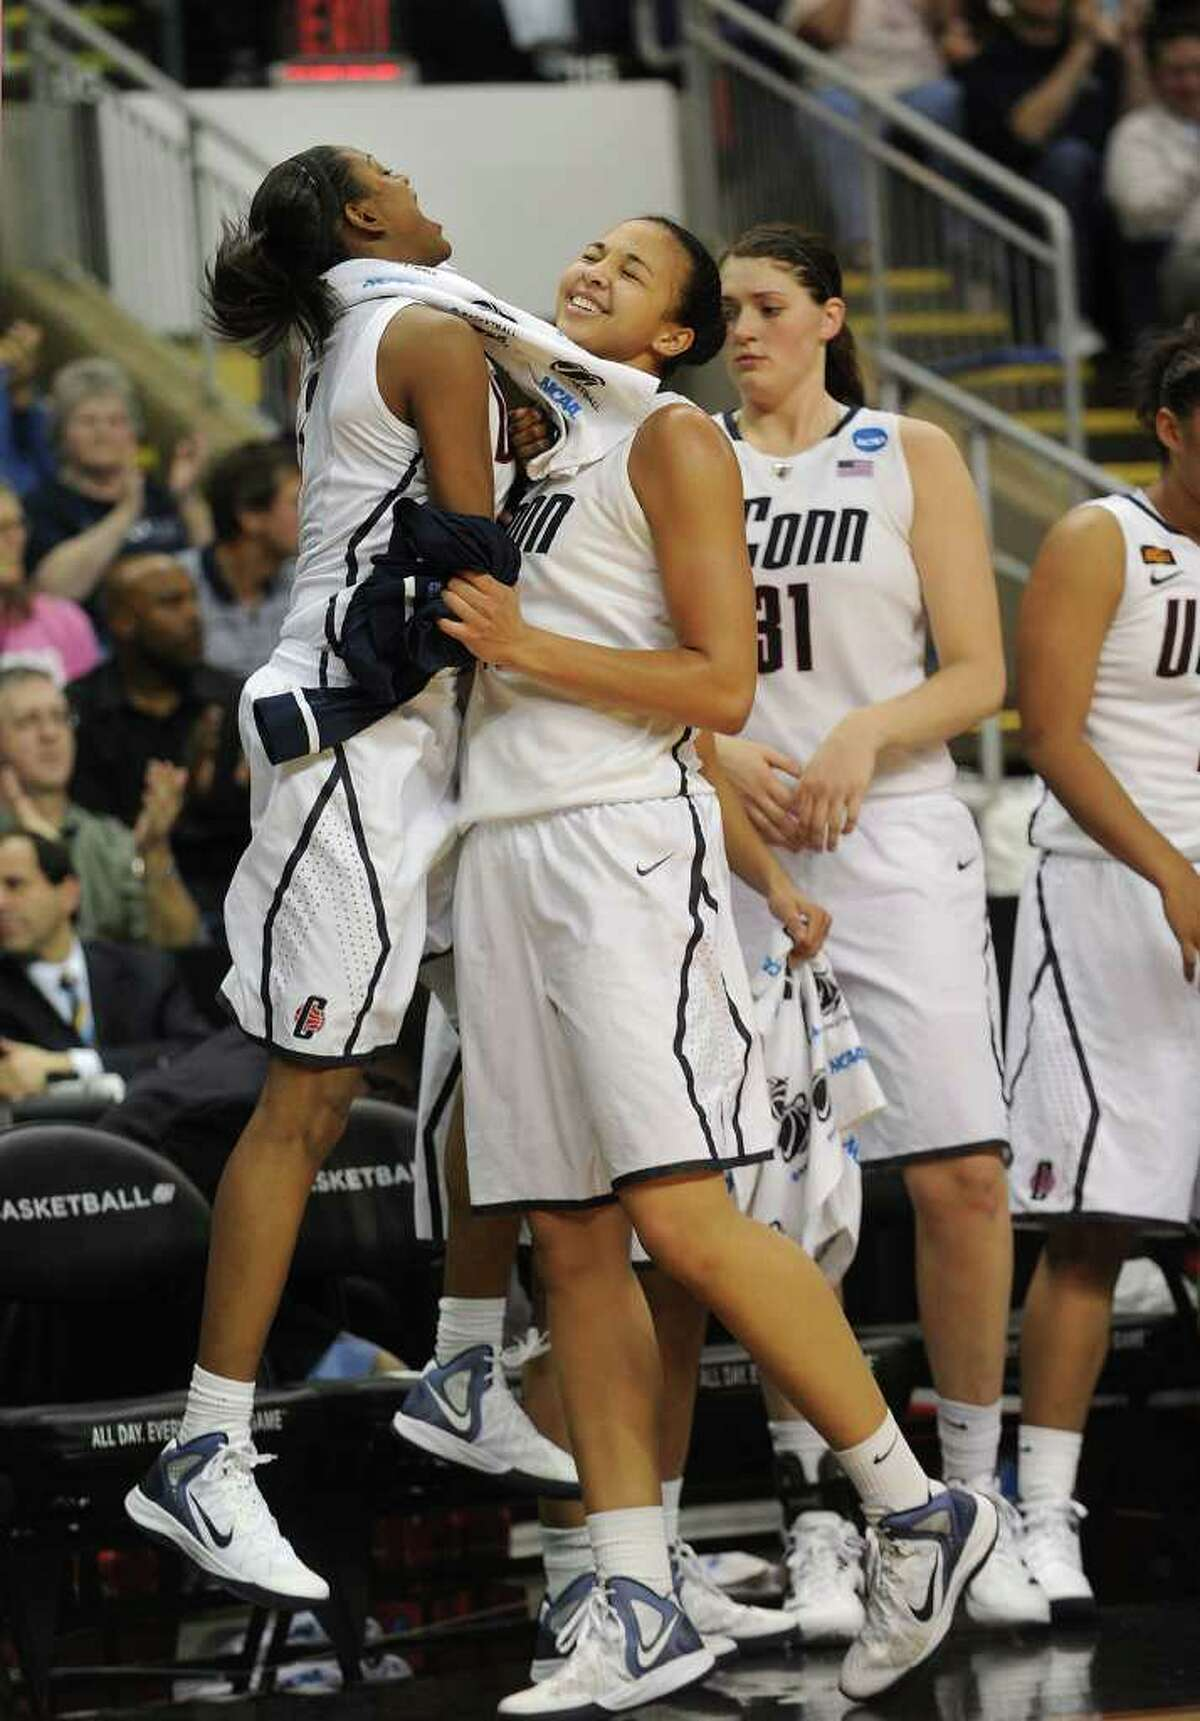 From left; UConn's Tiffany Hayes greets teammate Kiah Stokes as she heads to the bench in the final minutes of their victory over Kansas State in the second round of the NCAA women's basketball tournament at the Webster Bank Arena in Bridgeport on Monday, March 19, 2012.